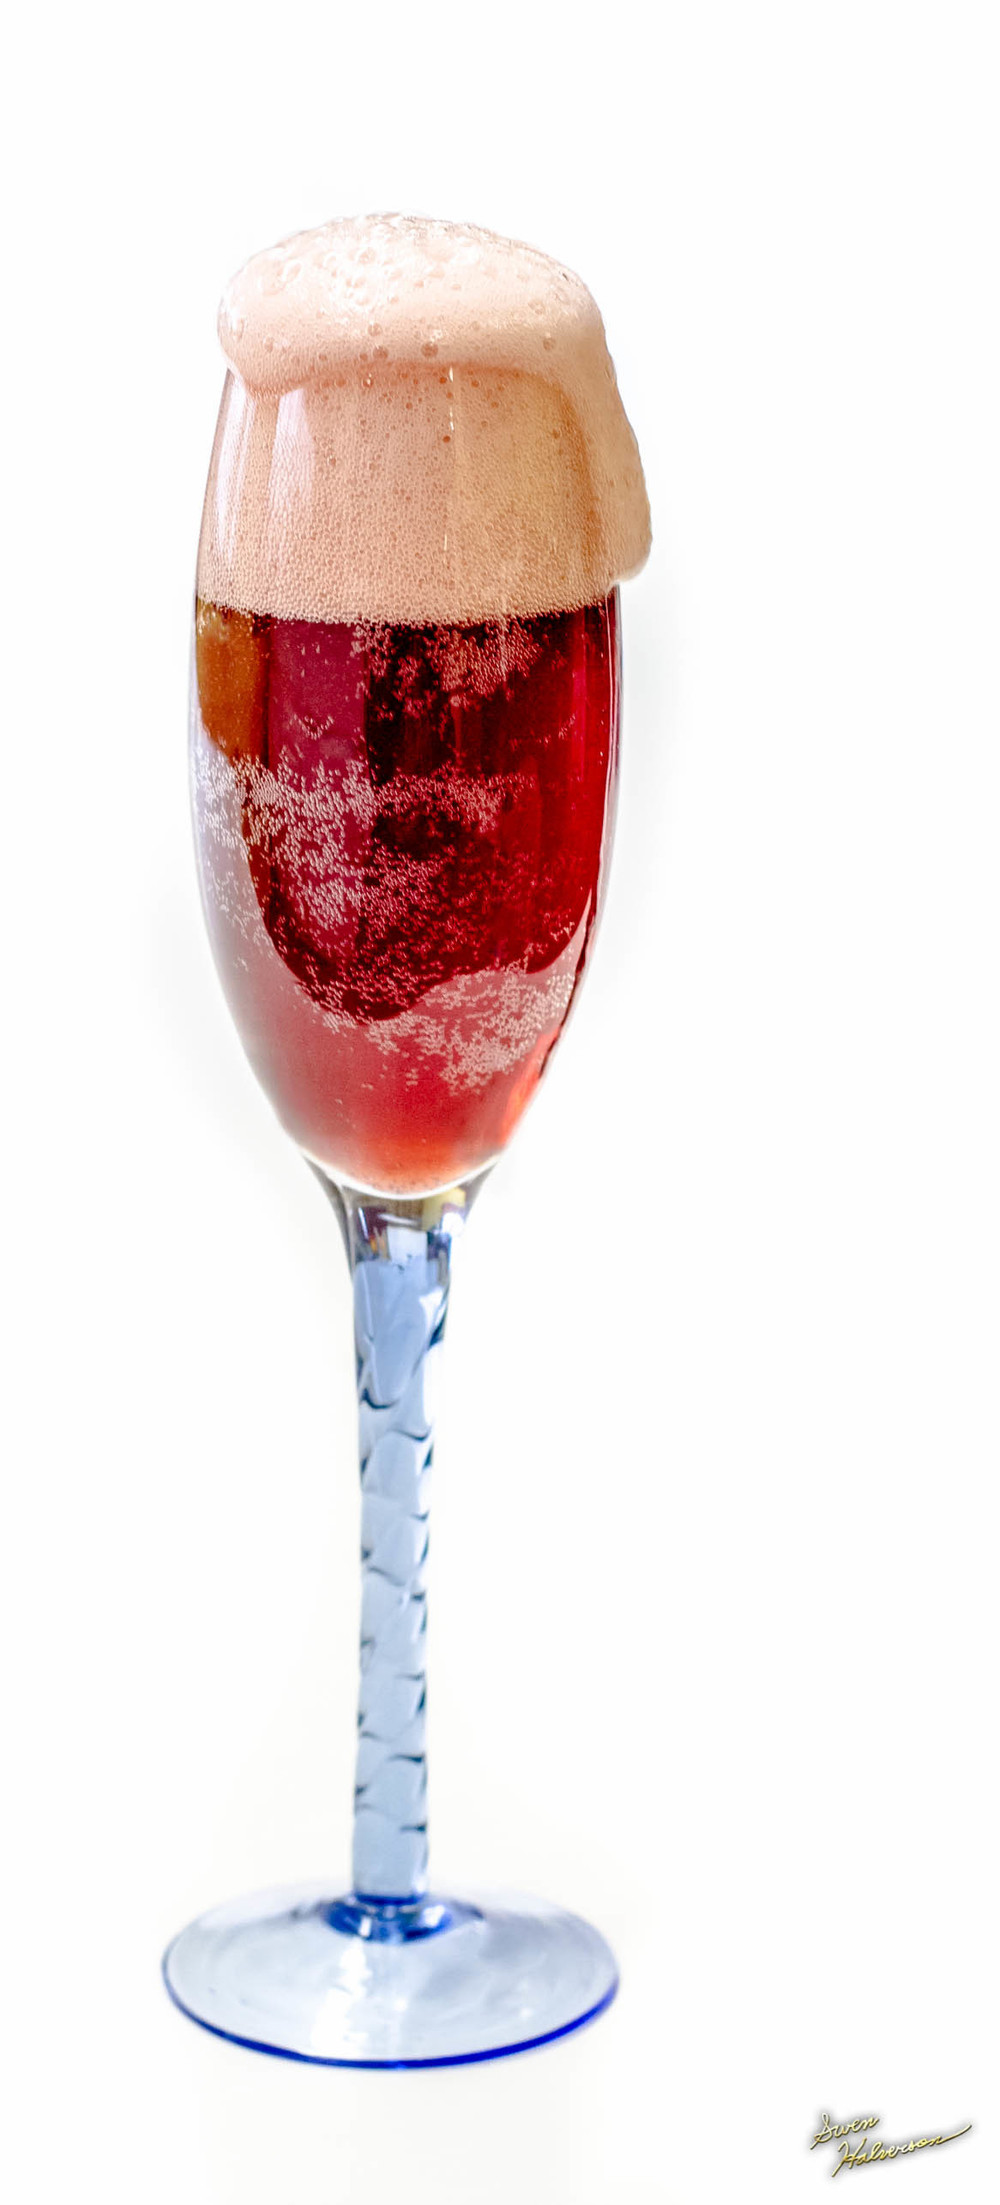 Theme: Sparkling | Title: Sparkling Cherry Juice